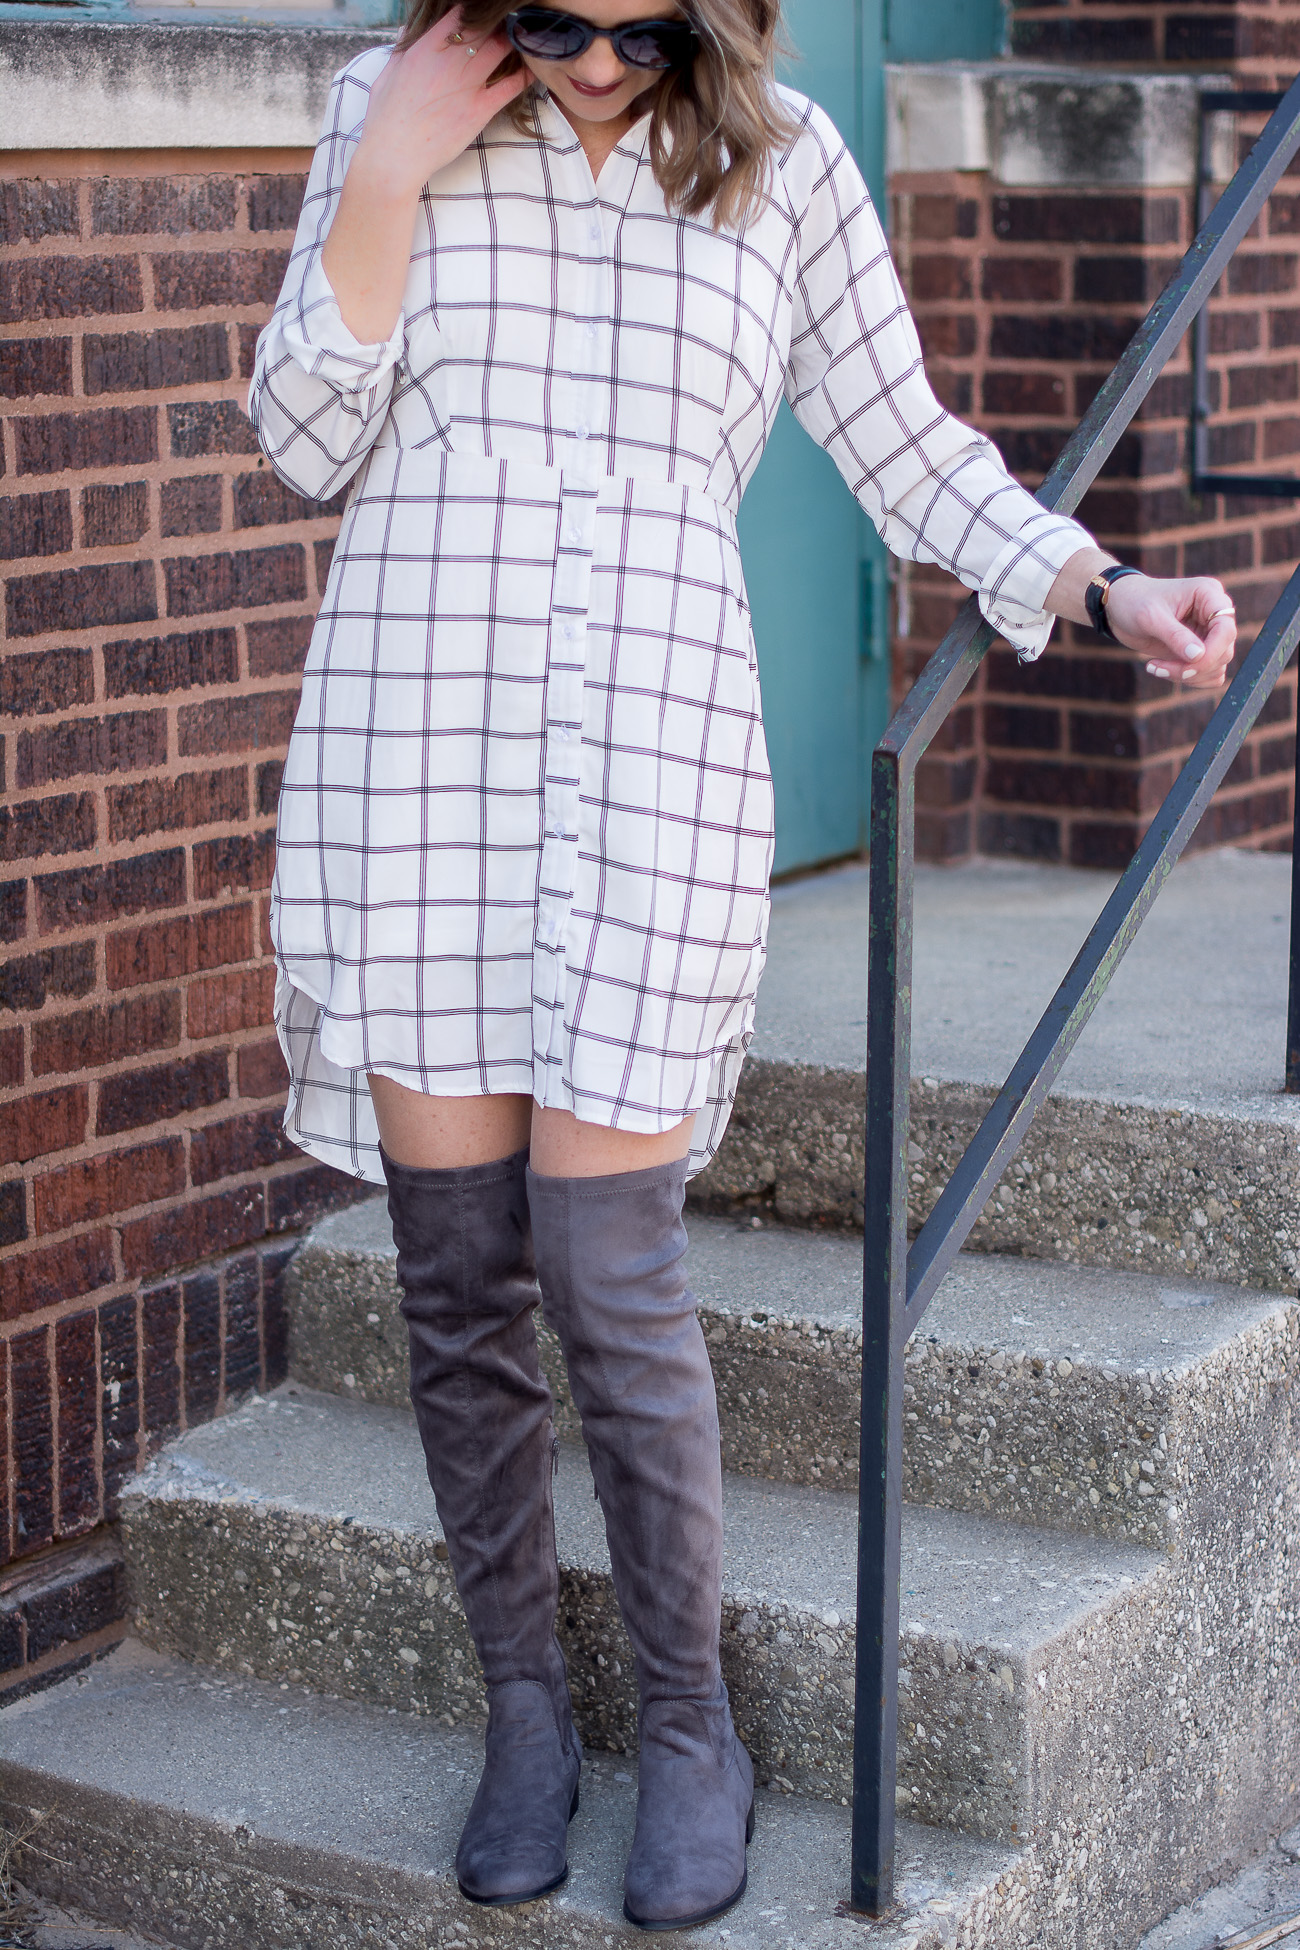 designer-dupe-round-sunglasses-black-and-white-grid-print-shirtdress-gray-over-the-knee-boots-delicate-jewelry